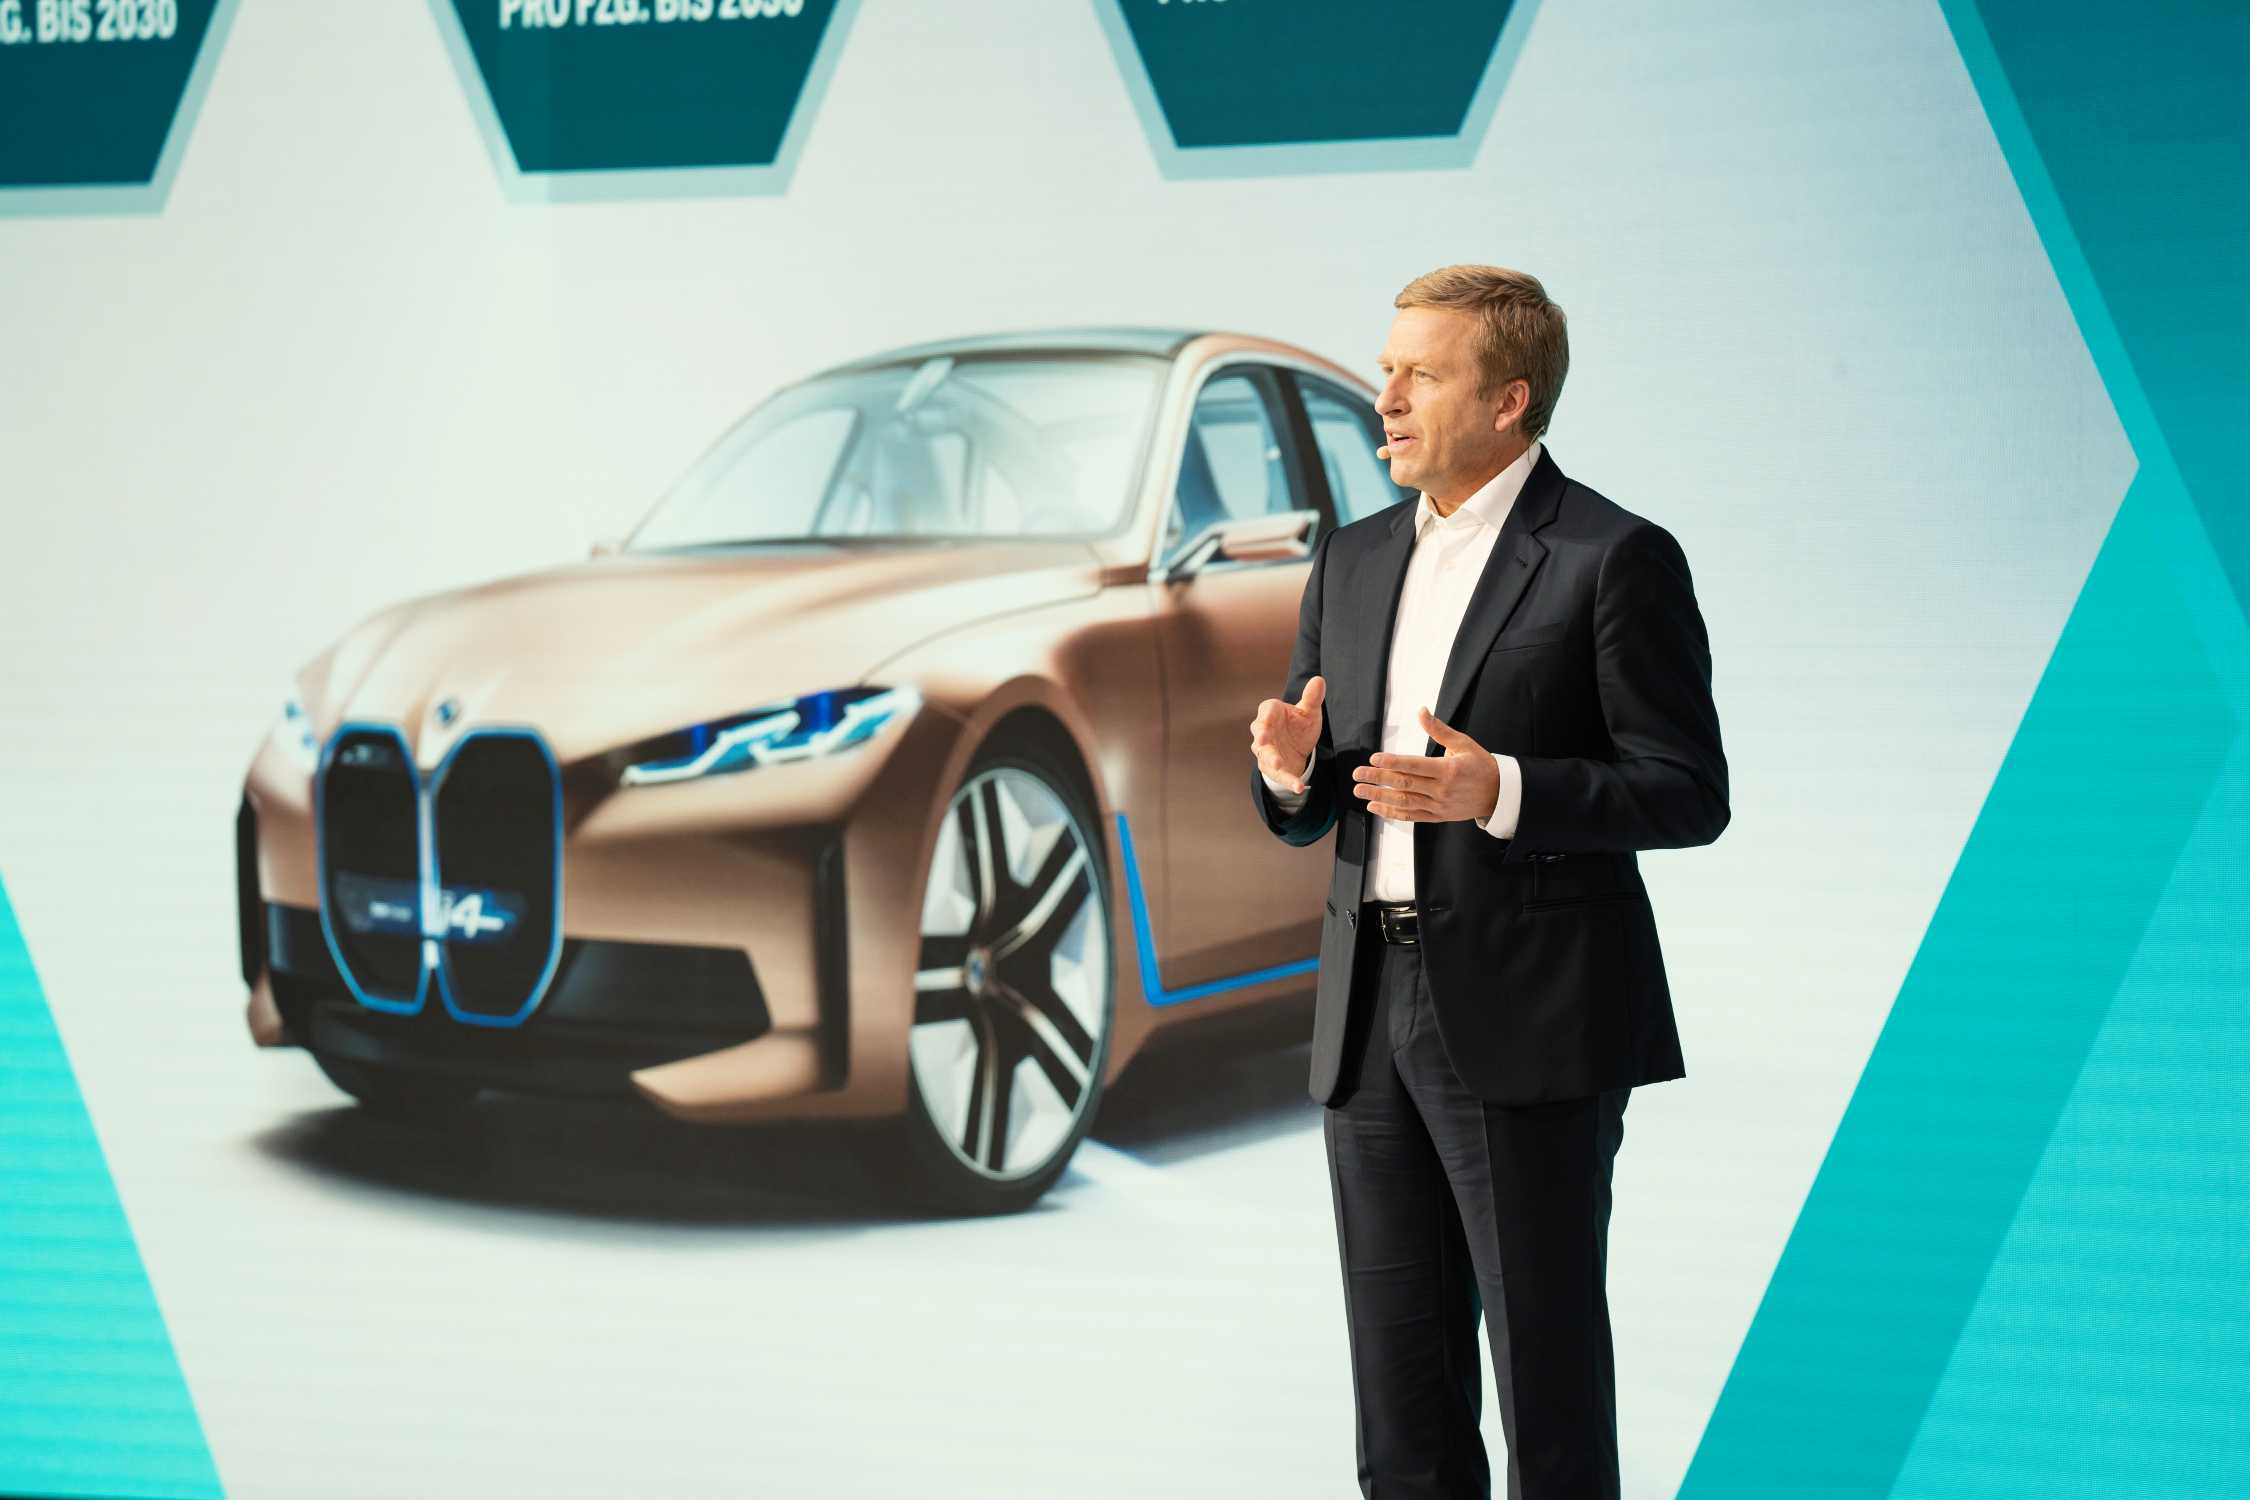 BMW Group FIZ Future: Opening Projekthaus Nord in Munich on 25th September 2020. Oliver Zipse, Chairman of the Board of Management of BMW AG (09/2020).